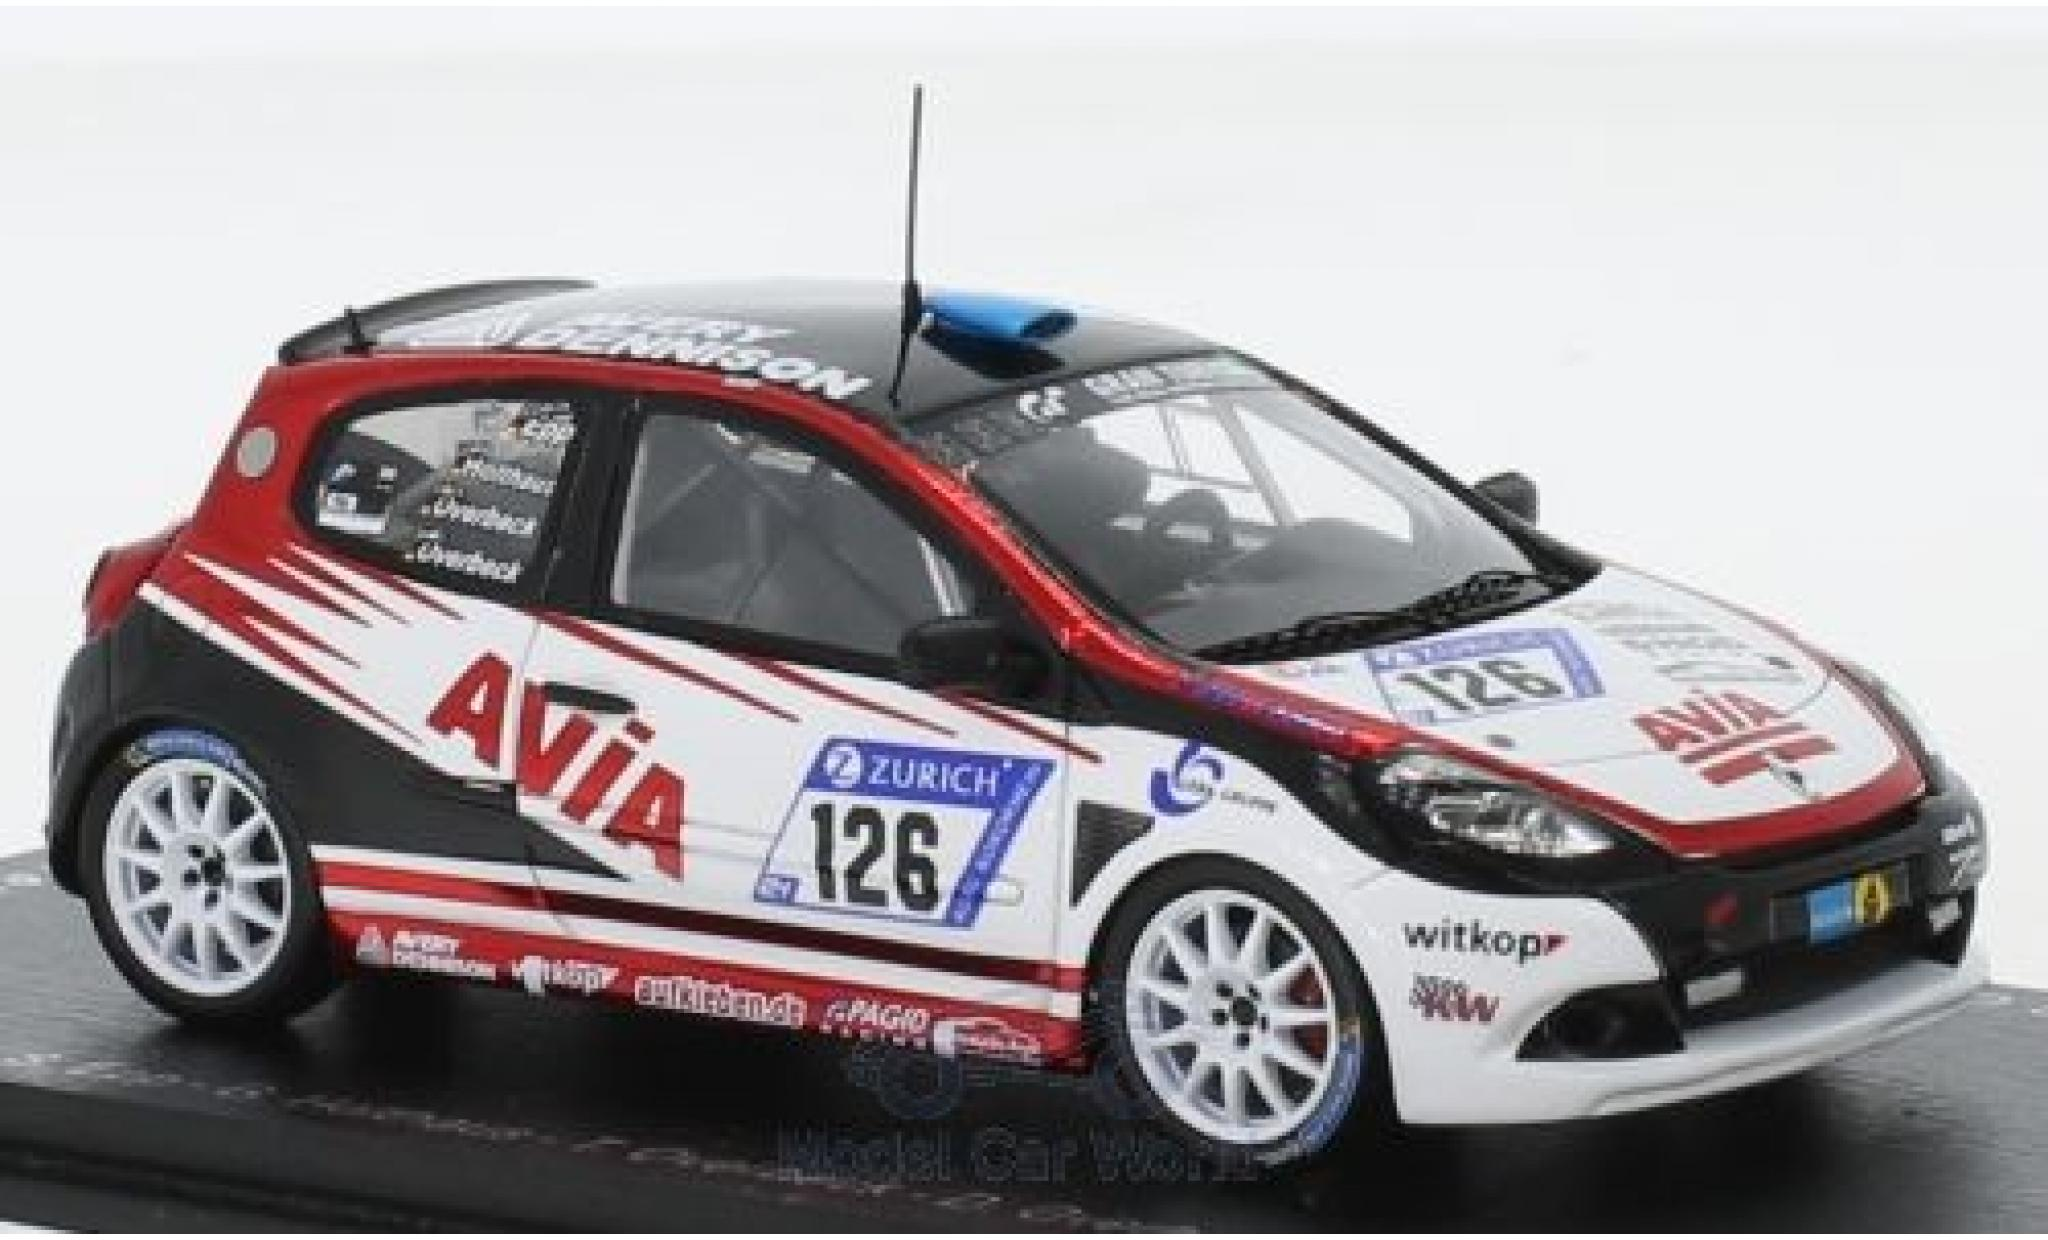 Renault Clio 1/43 Spark RS Cup No.126 Avia Racing 24h Nürburgring 2018 S.Epp/G.Holthaus/T.Overbeck/D.Overbeck